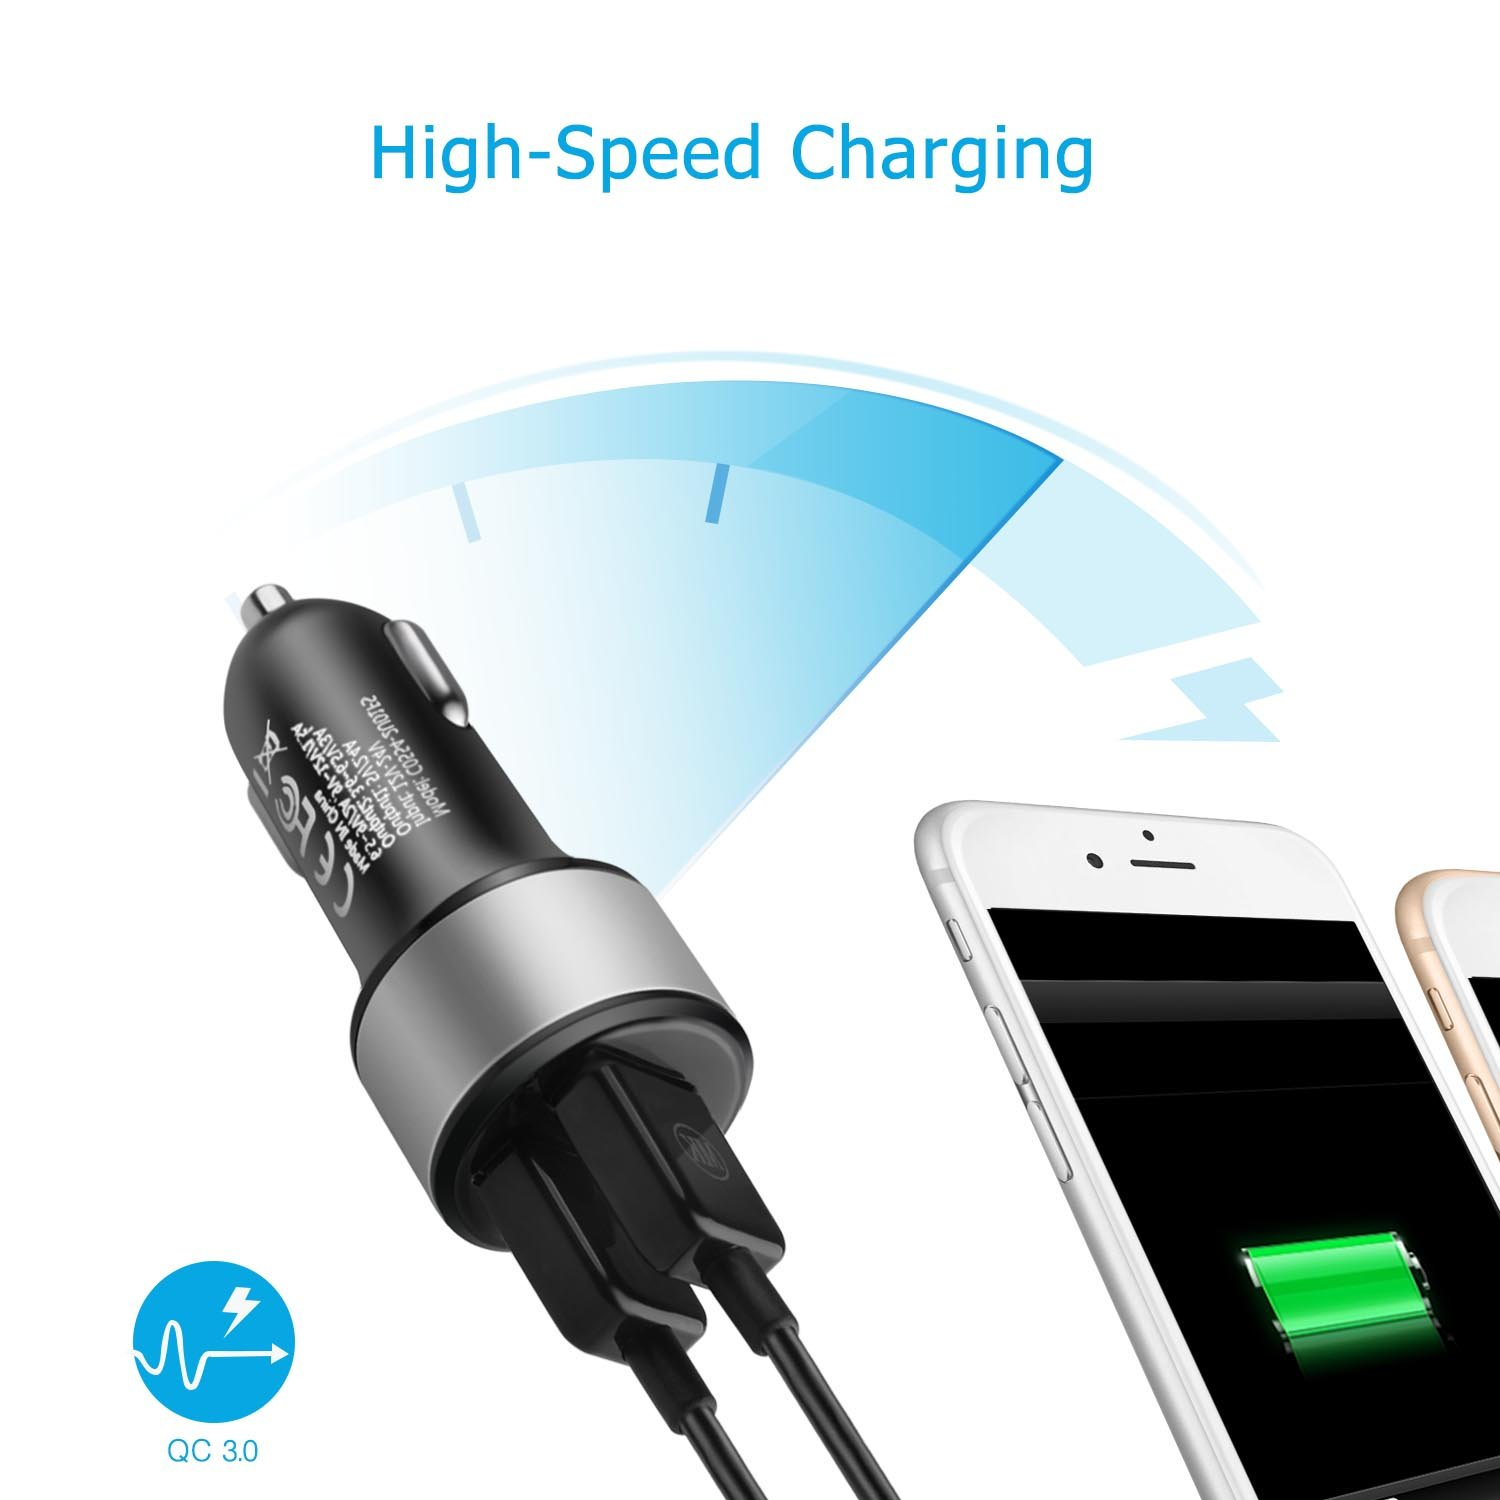 Amazon.com: TNP Dual USB Port Car Charger with Quick Charge 3.0 Smart Fast Charge Port Power Adapter for iPhone X/8/7/Plus, iPad Pro/Air/Mini, ...